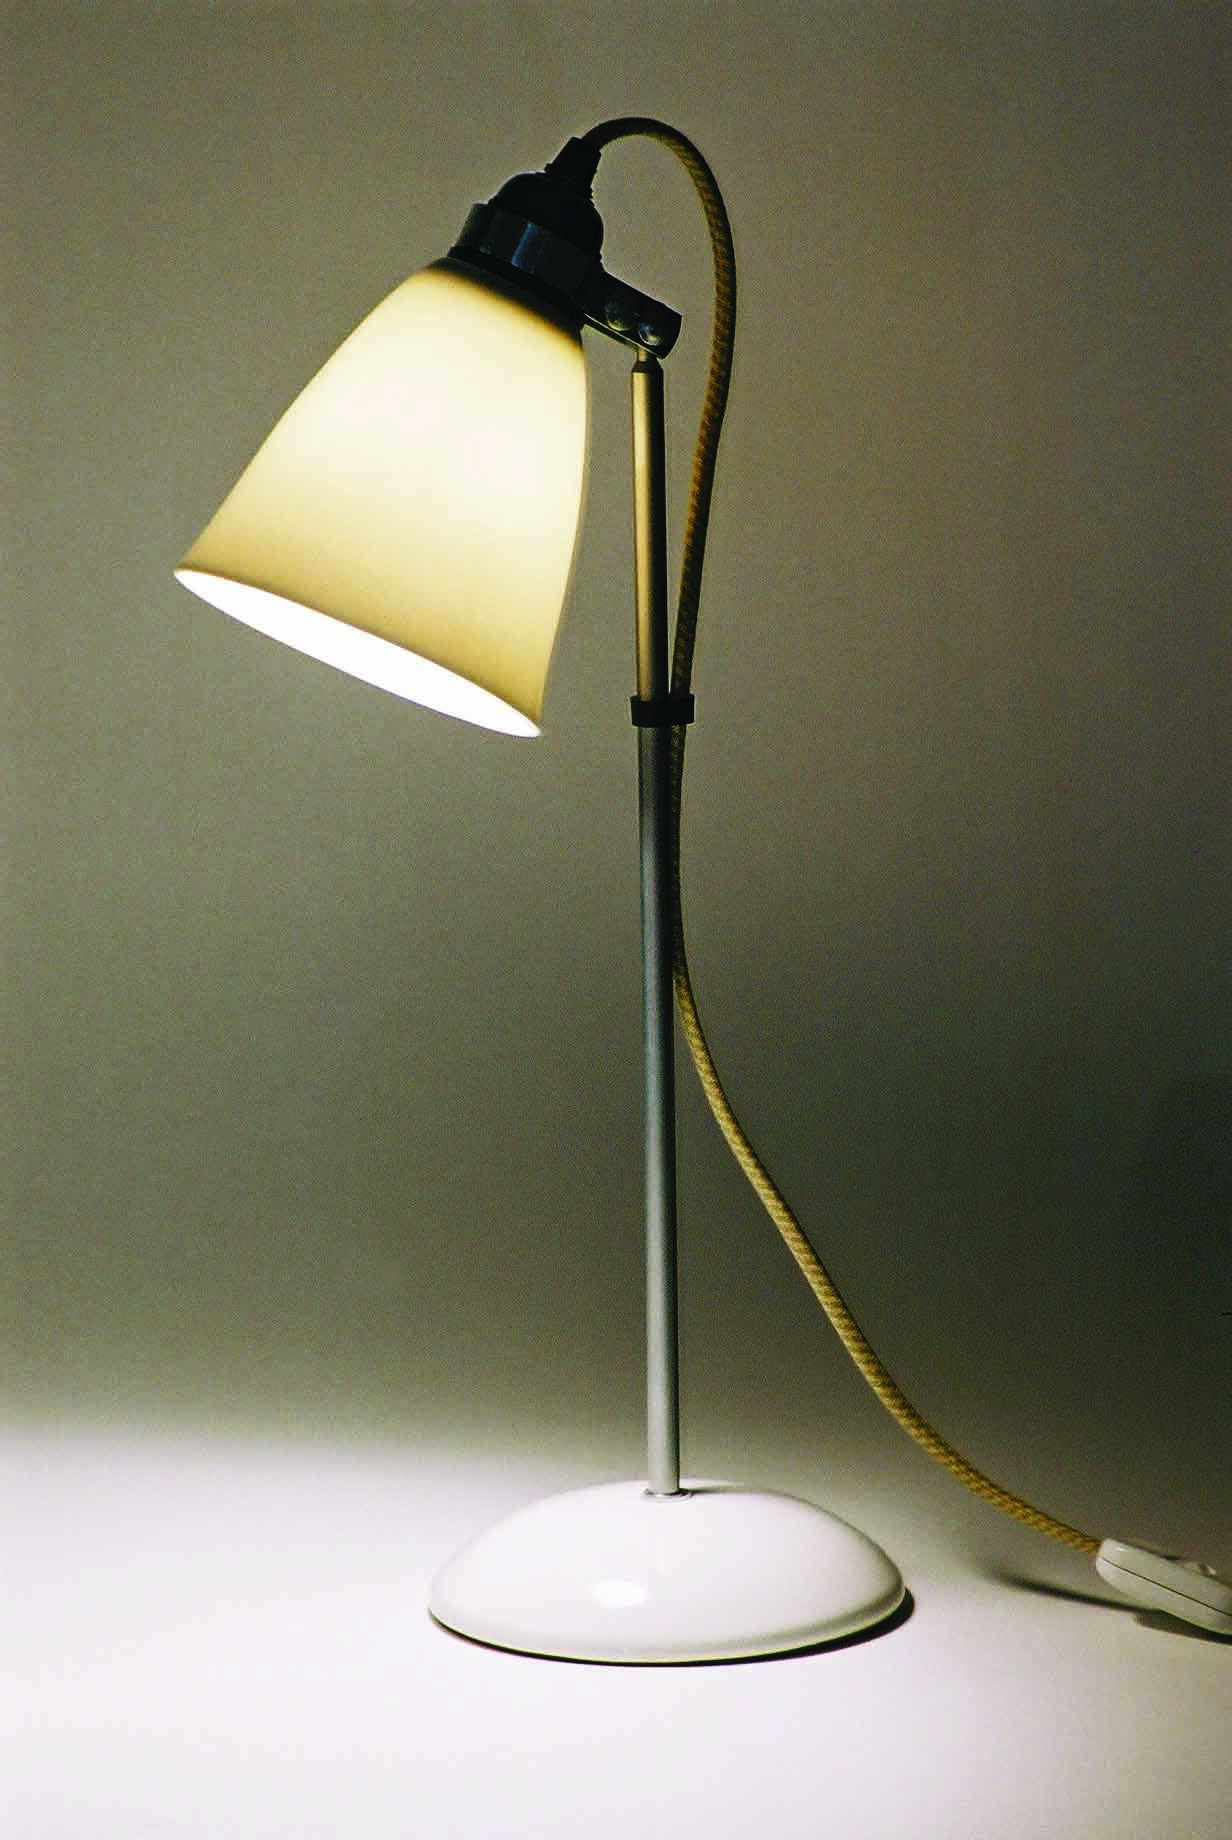 Best ideas about Small Desk Lamps . Save or Pin TOP 10 Small desk lamps 2019 Now.